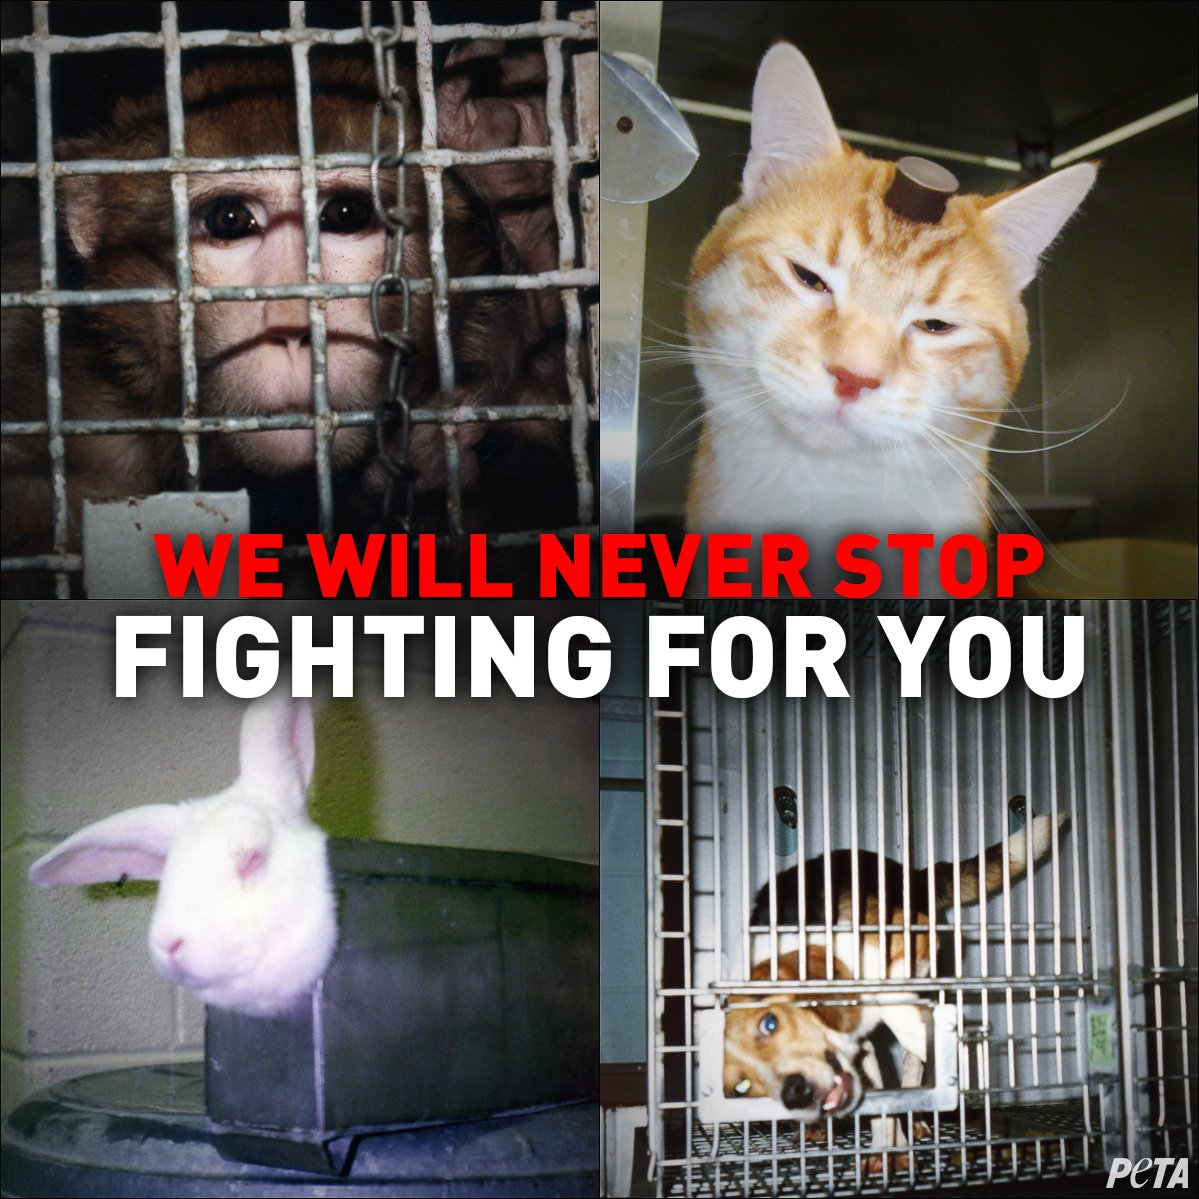 RT @peta: We won't stop fighting until ALL tests on animals end! #StopAnimalTests https://t.co/EfAmzLA4B9